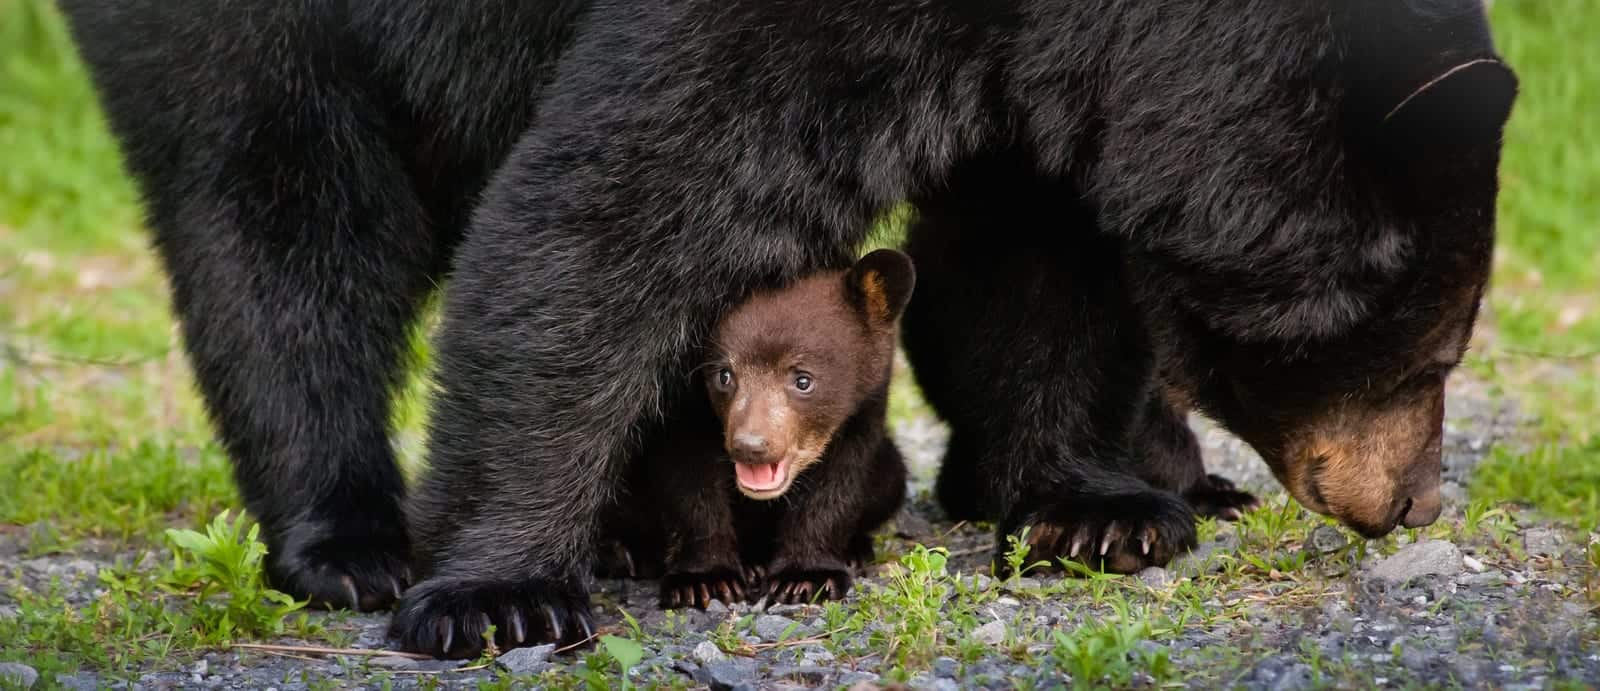 baby black bear hiding under mother bear